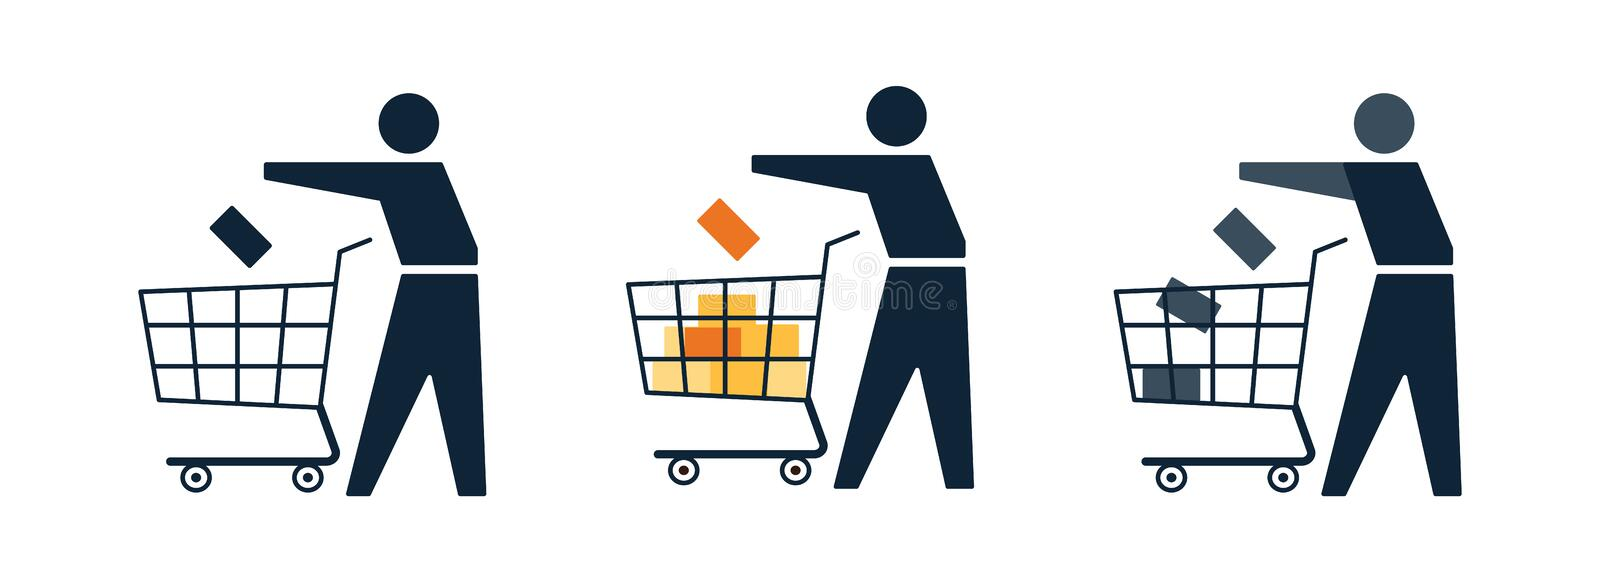 Shopper, customer with cart making shopping in the store. Or shop online. Icon set with people in the market with cart. Part of online store web design royalty free illustration